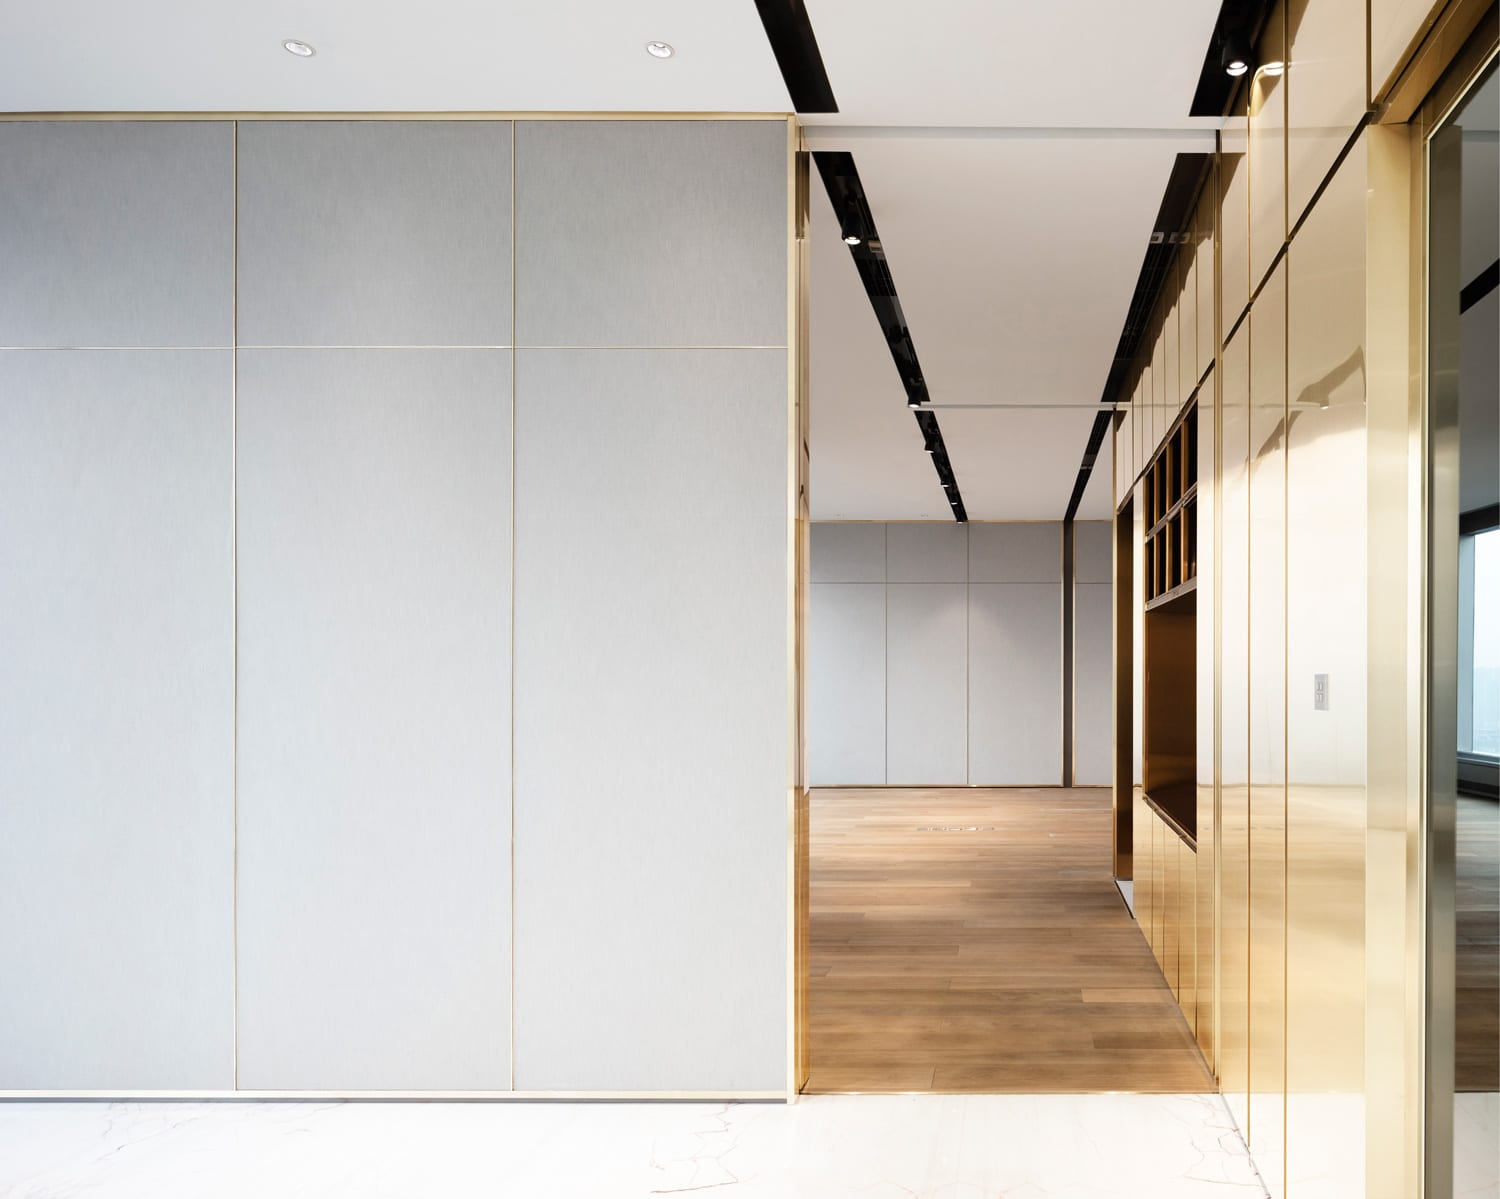 Exclusive Beijing Members Club by Superimpose Architecture | Yellowtrace